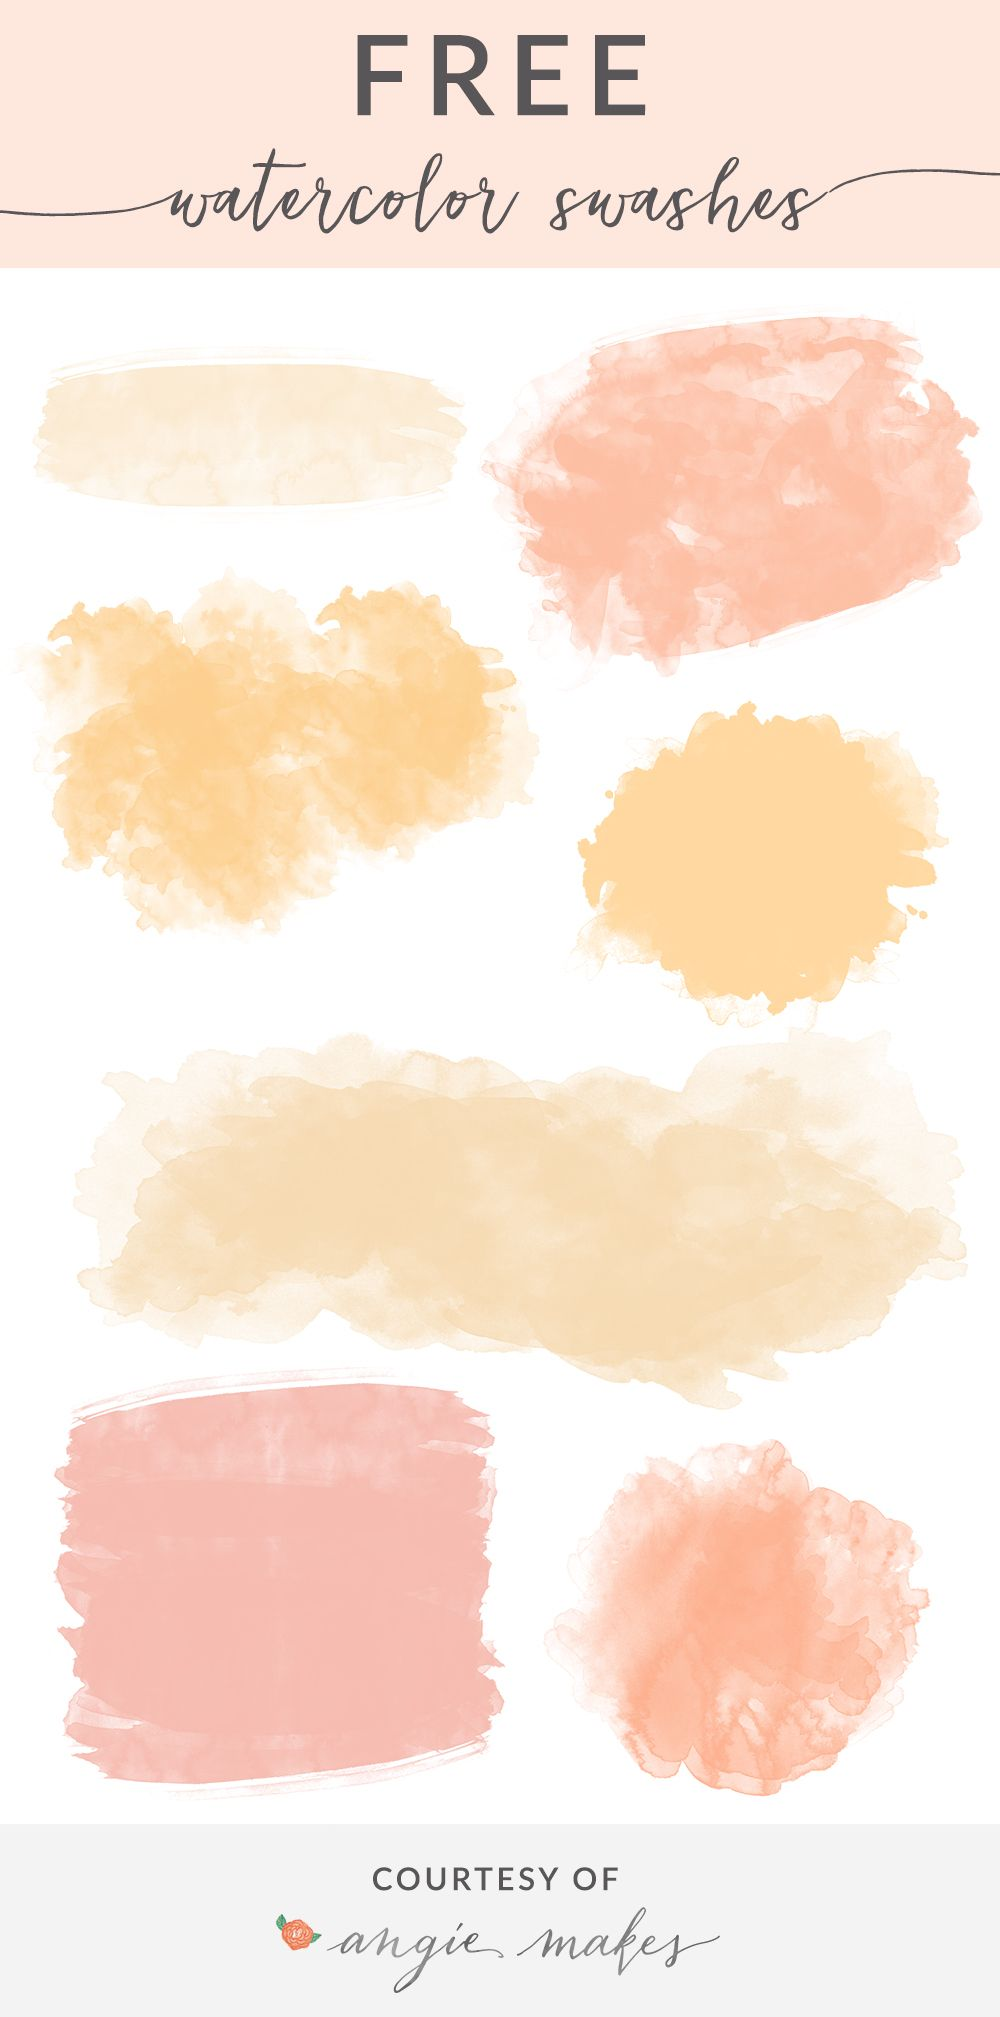 Free Watercolor Swashes Backgrounds Angie Makes ภาพประกอบ สต กเกอร สม ดออร แกไนเซอร